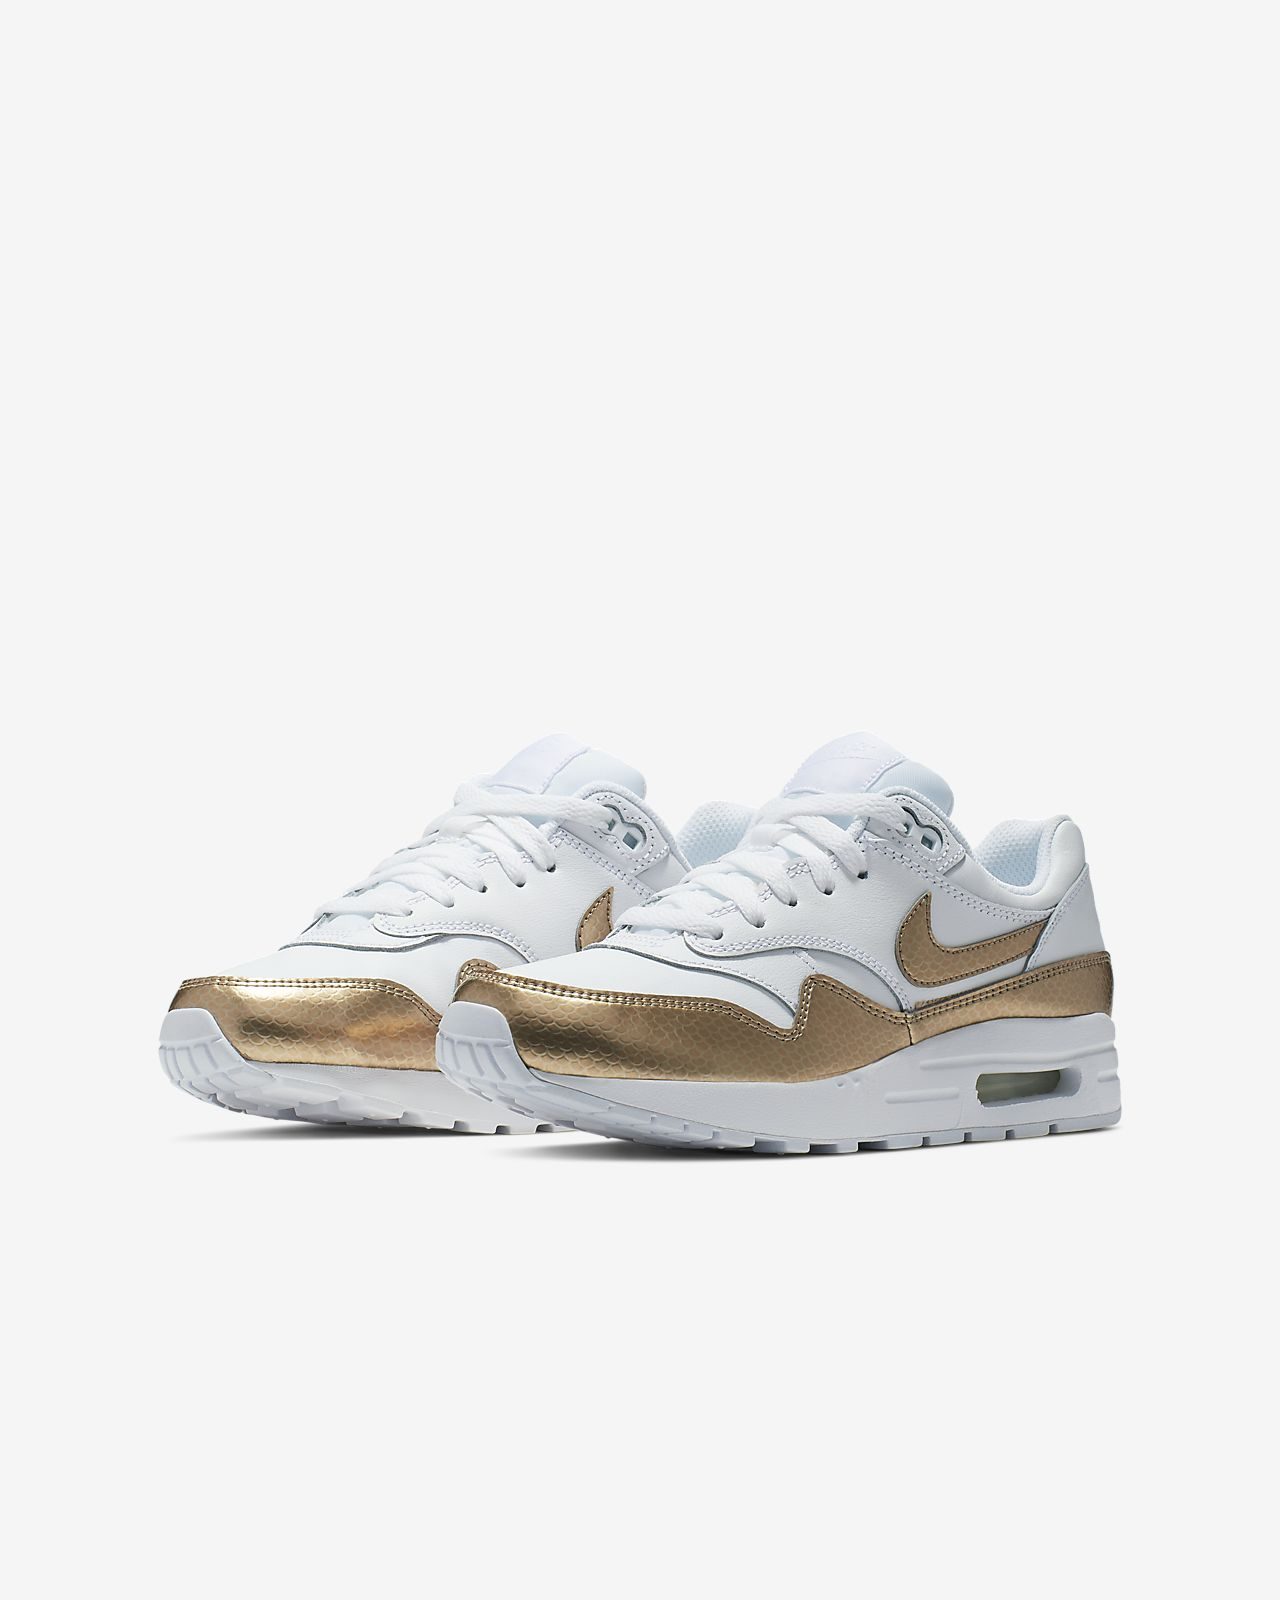 separation shoes 28f1c 6c6cd Nike Air Max 1 EP